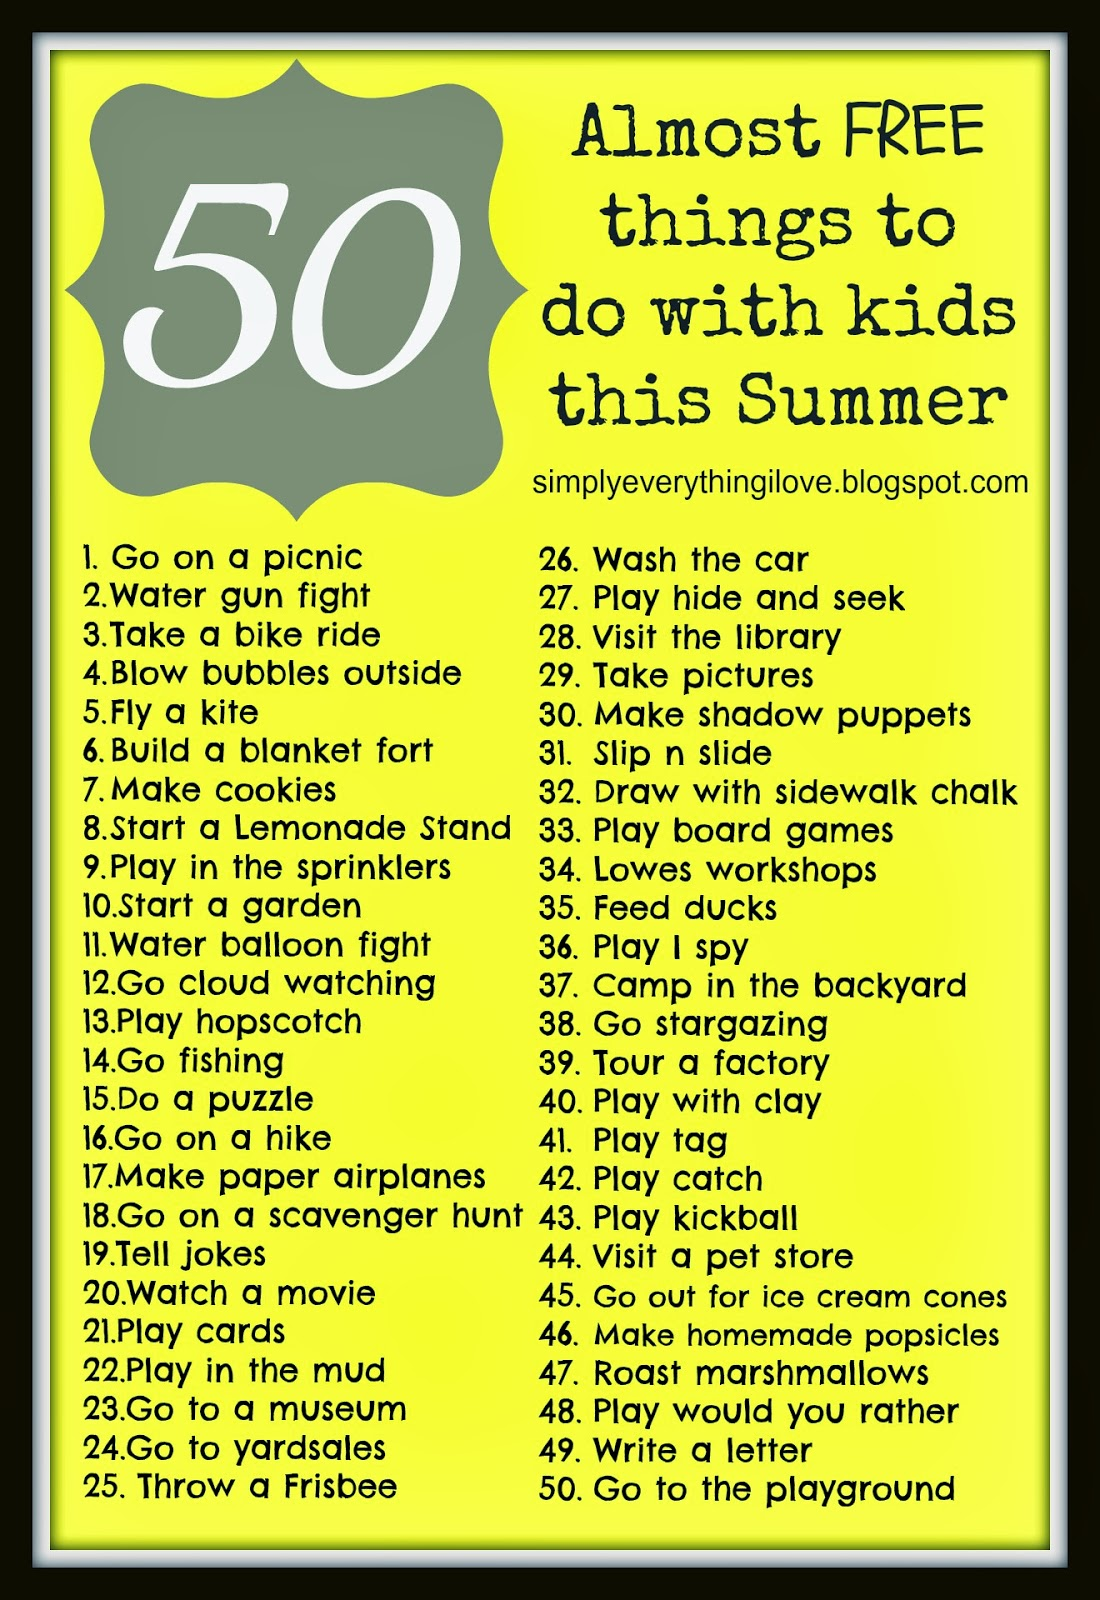 Simply Everthing I Love 50 Almost Free Things To Do